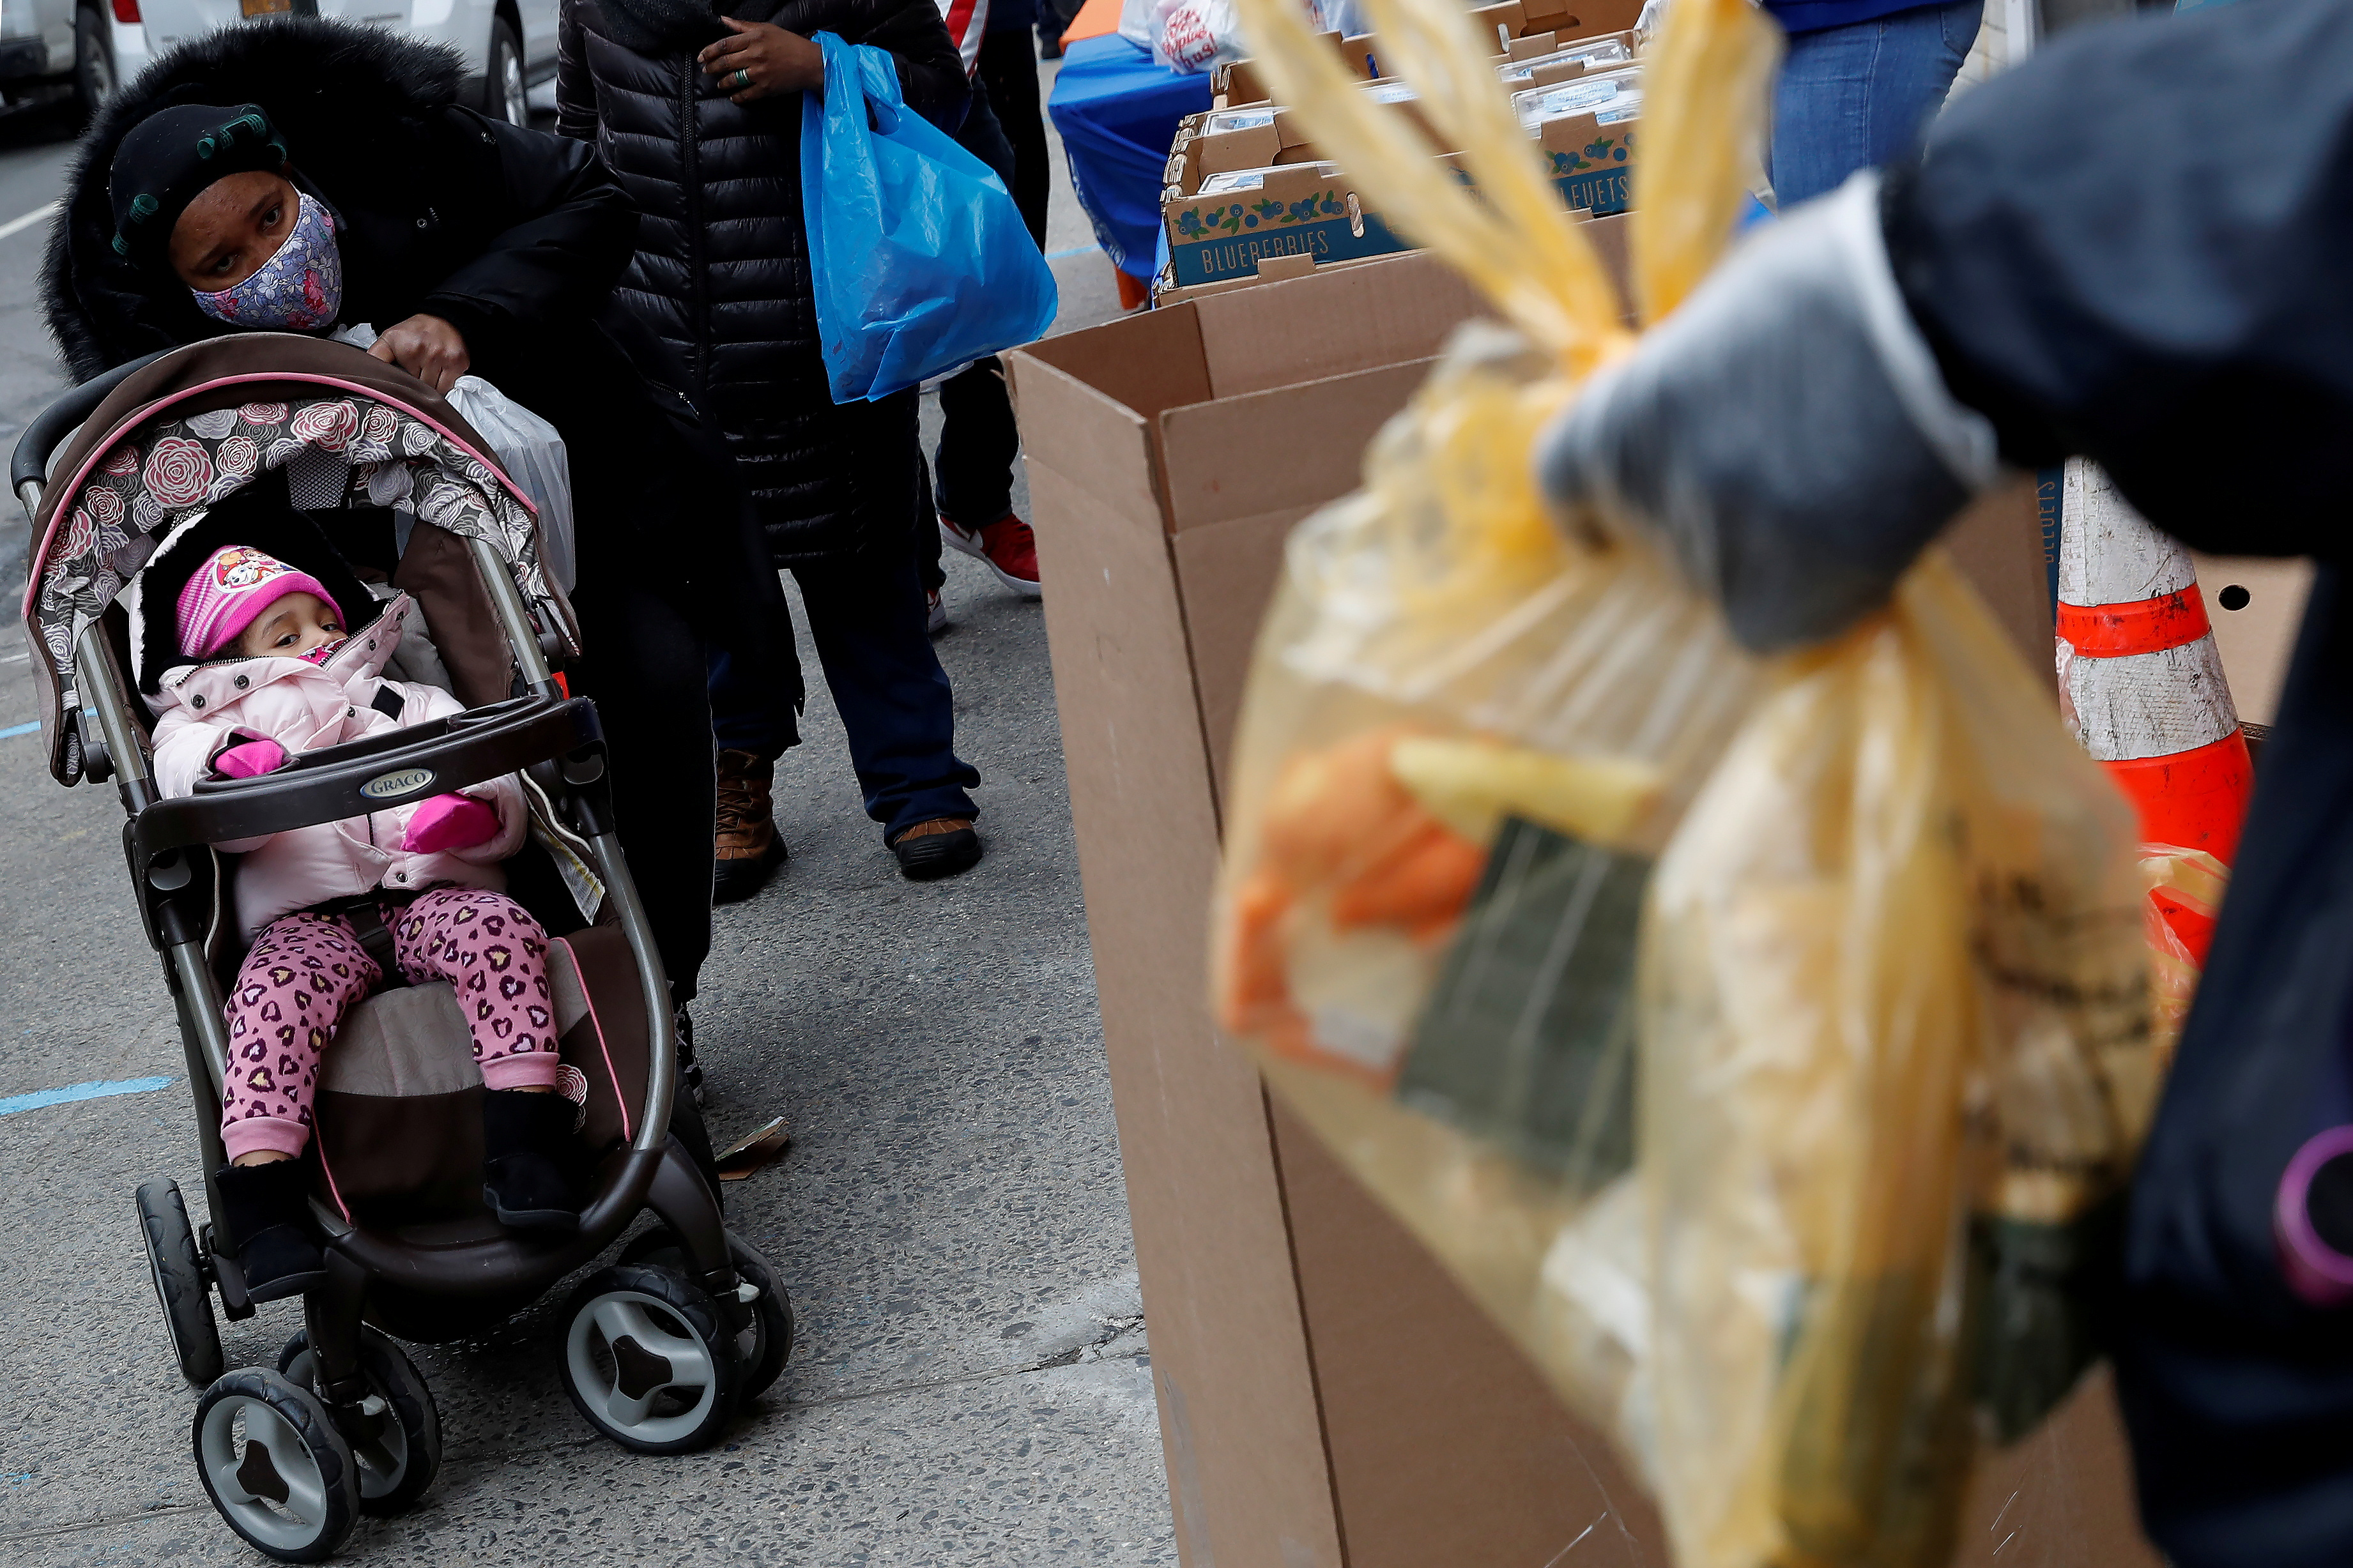 People wait in line for donations outside a food distribution facility amid the spread of the coronavirus disease (COVID-19) in the Harlem section of the Manhattan borough of New York, U.S., January 27, 2021. REUTERS/Shannon Stapleton/File Photo